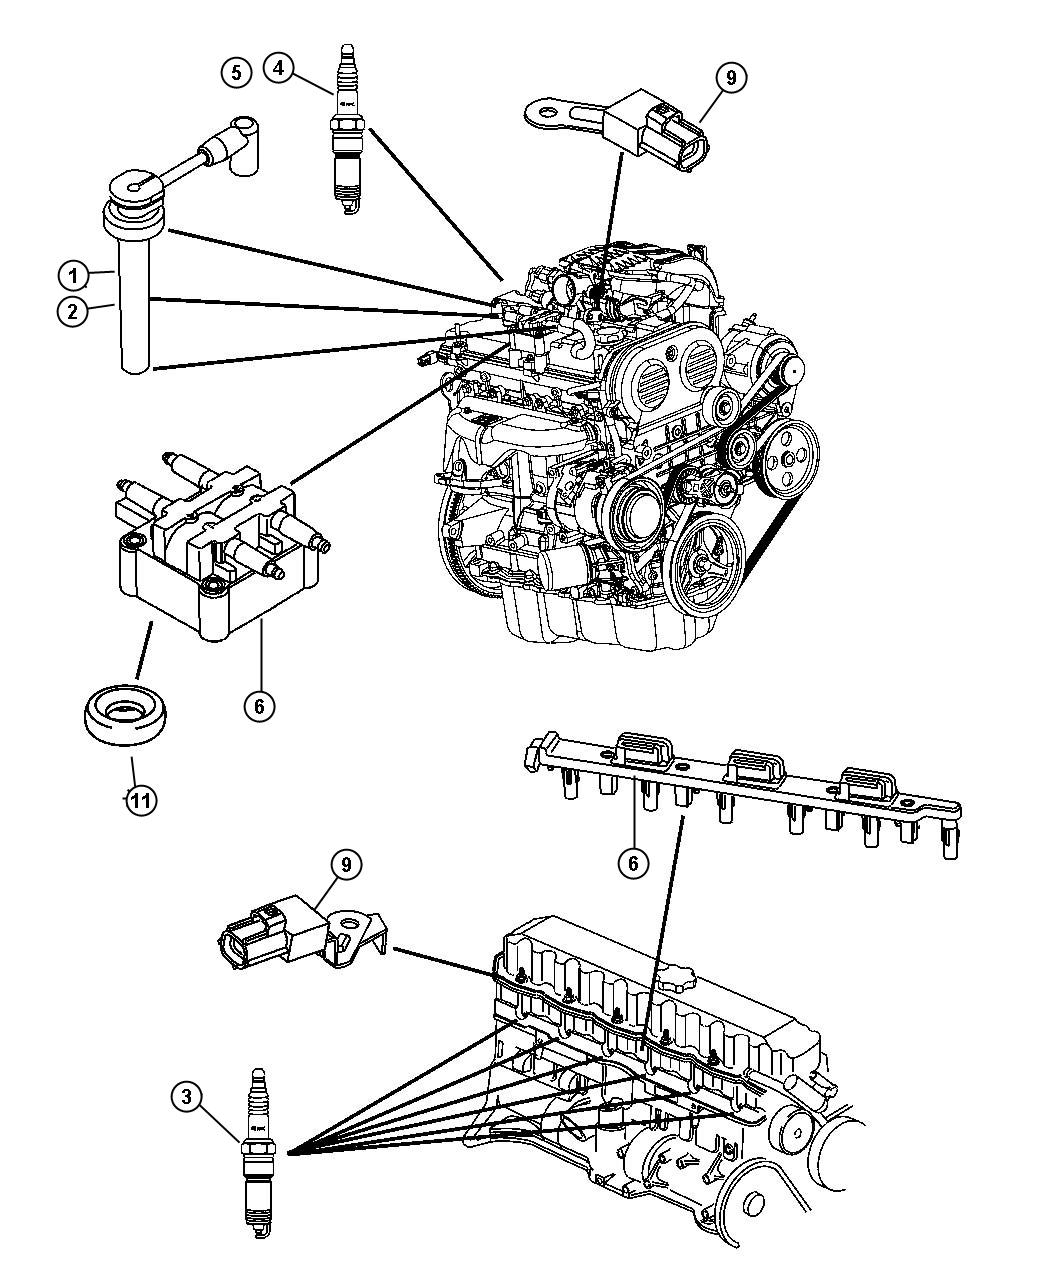 Jeep Wrangler 3 8 Spark Plug Wire Diagram